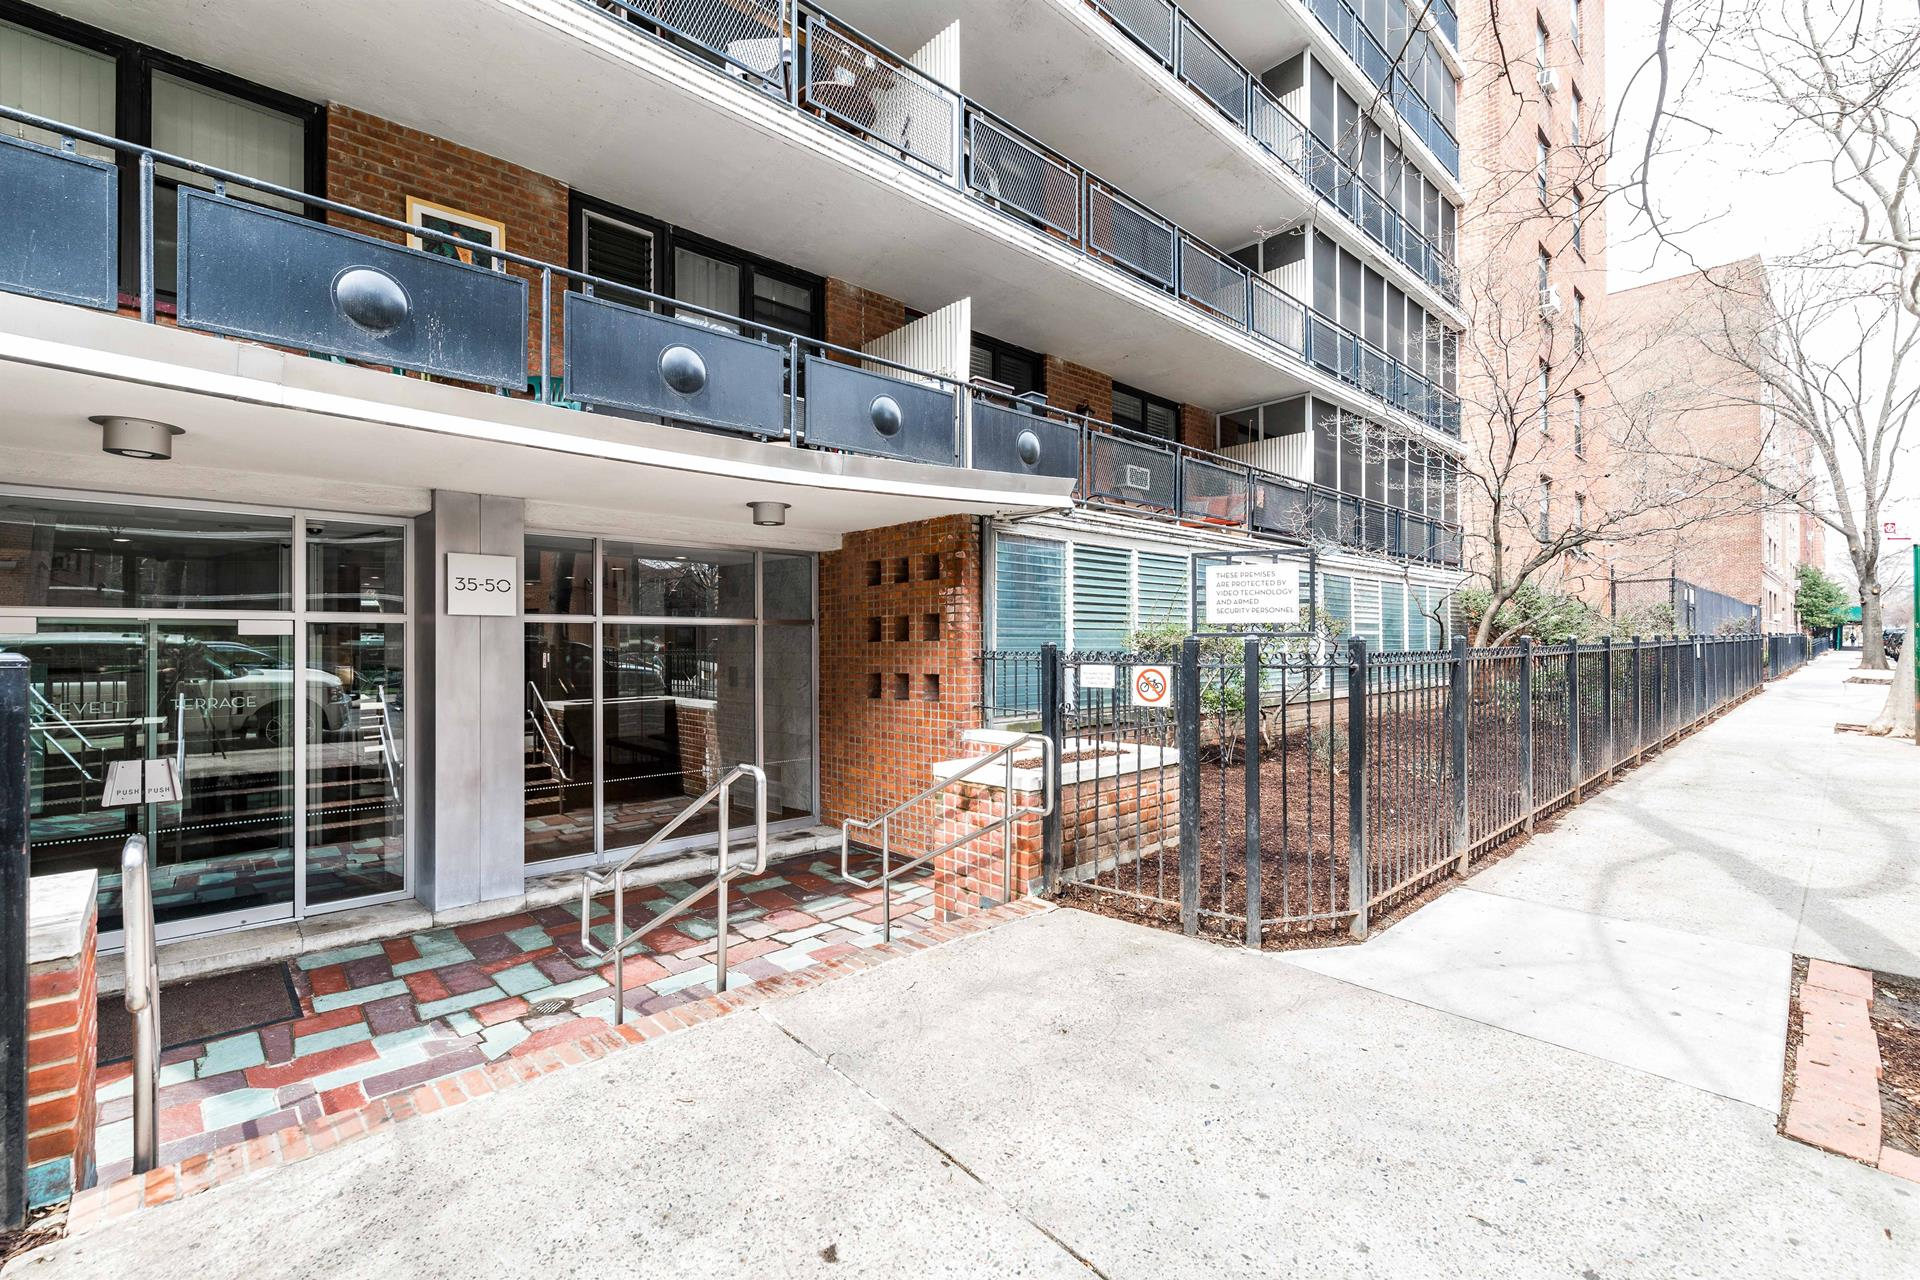 35-50 85th St, 2B - Jackson Heights, New York